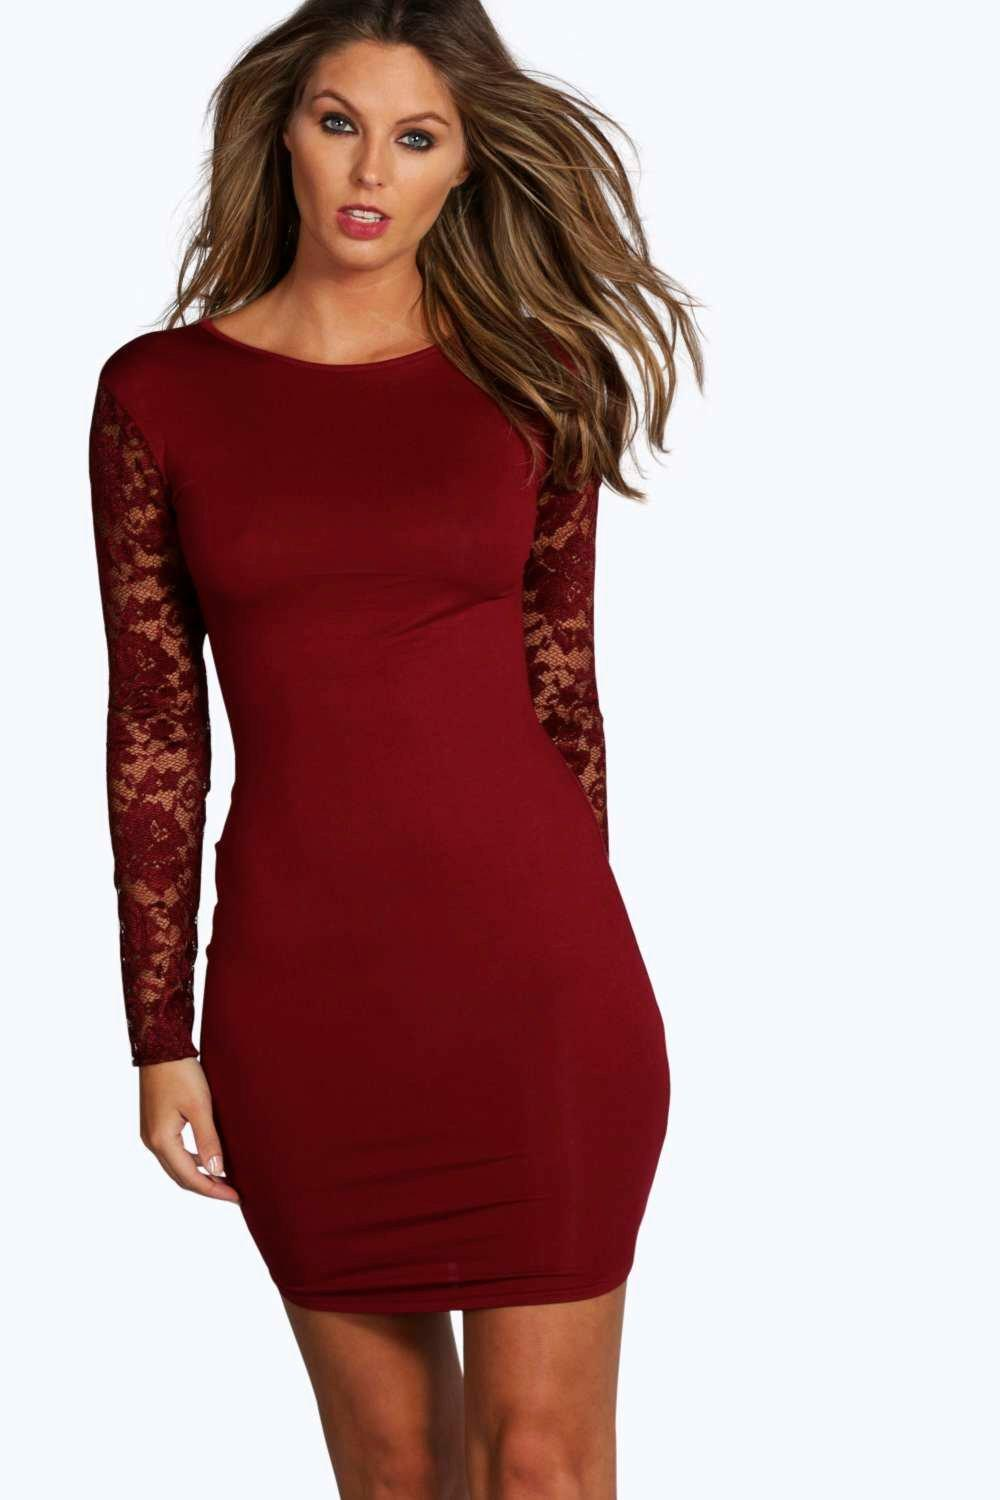 Lace Sleeve Bodycon Dress. Hover to zoom 052fcba70b5f